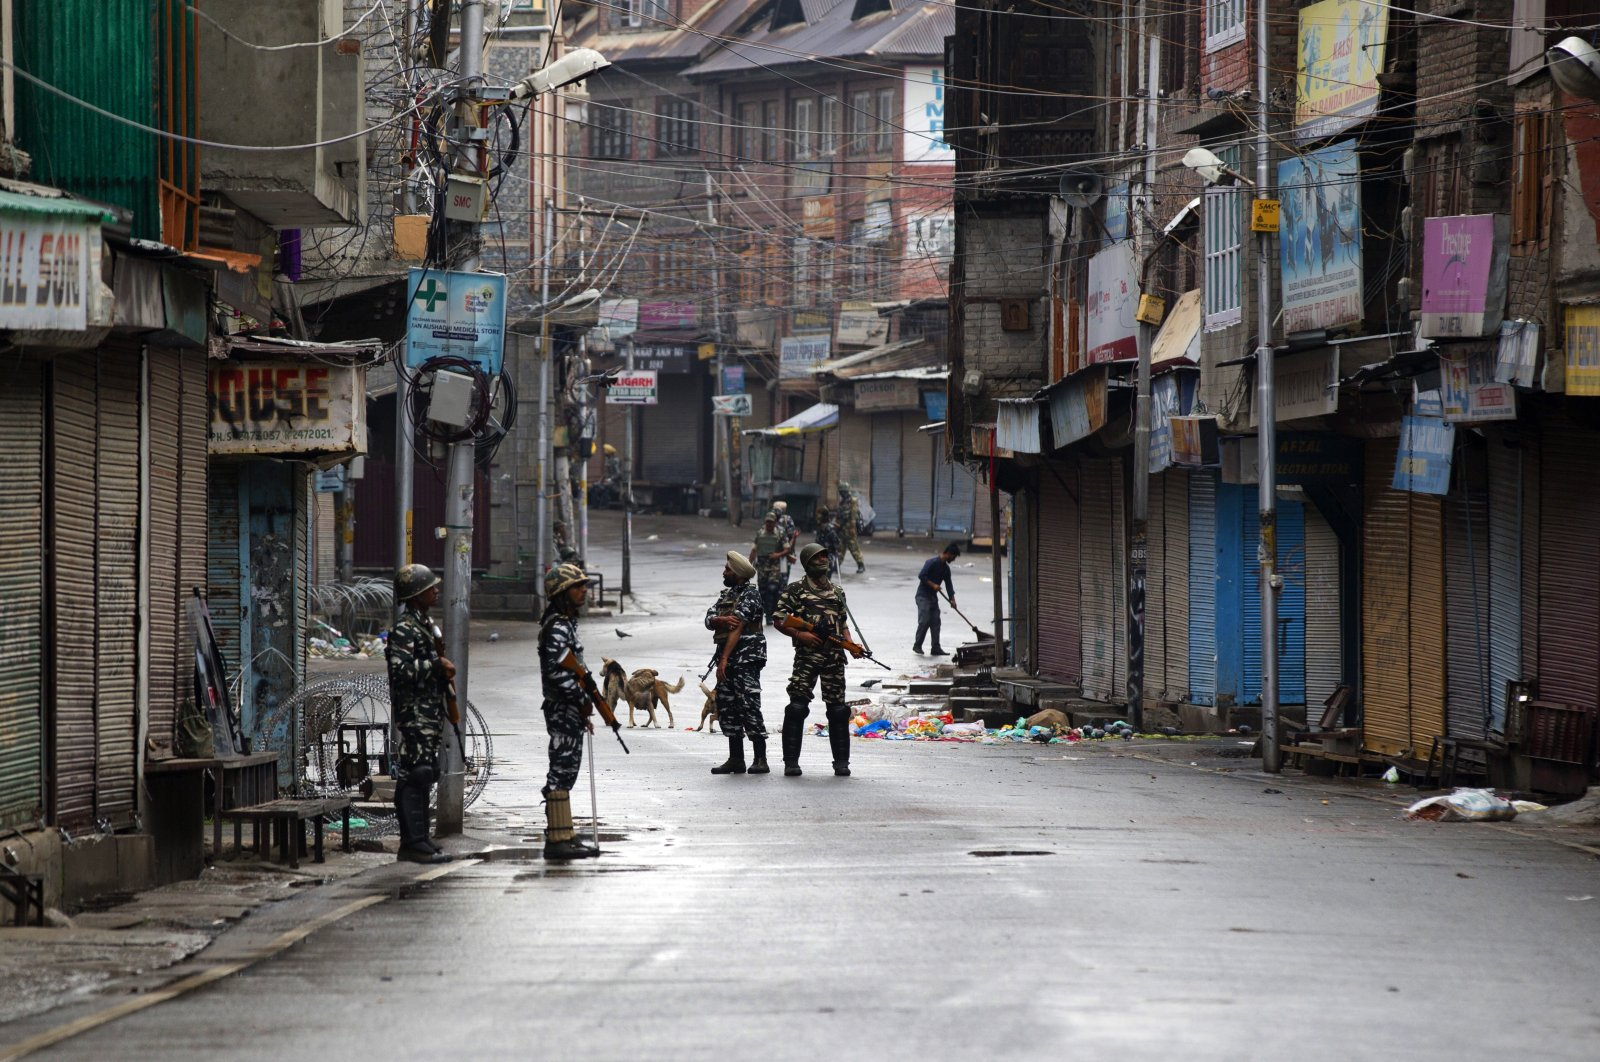 Indian soldiers stand guard on a deserted street during curfew in Srinagar, Indian-controlled Kashmir, Aug. 8, 2019. (AP Photo)